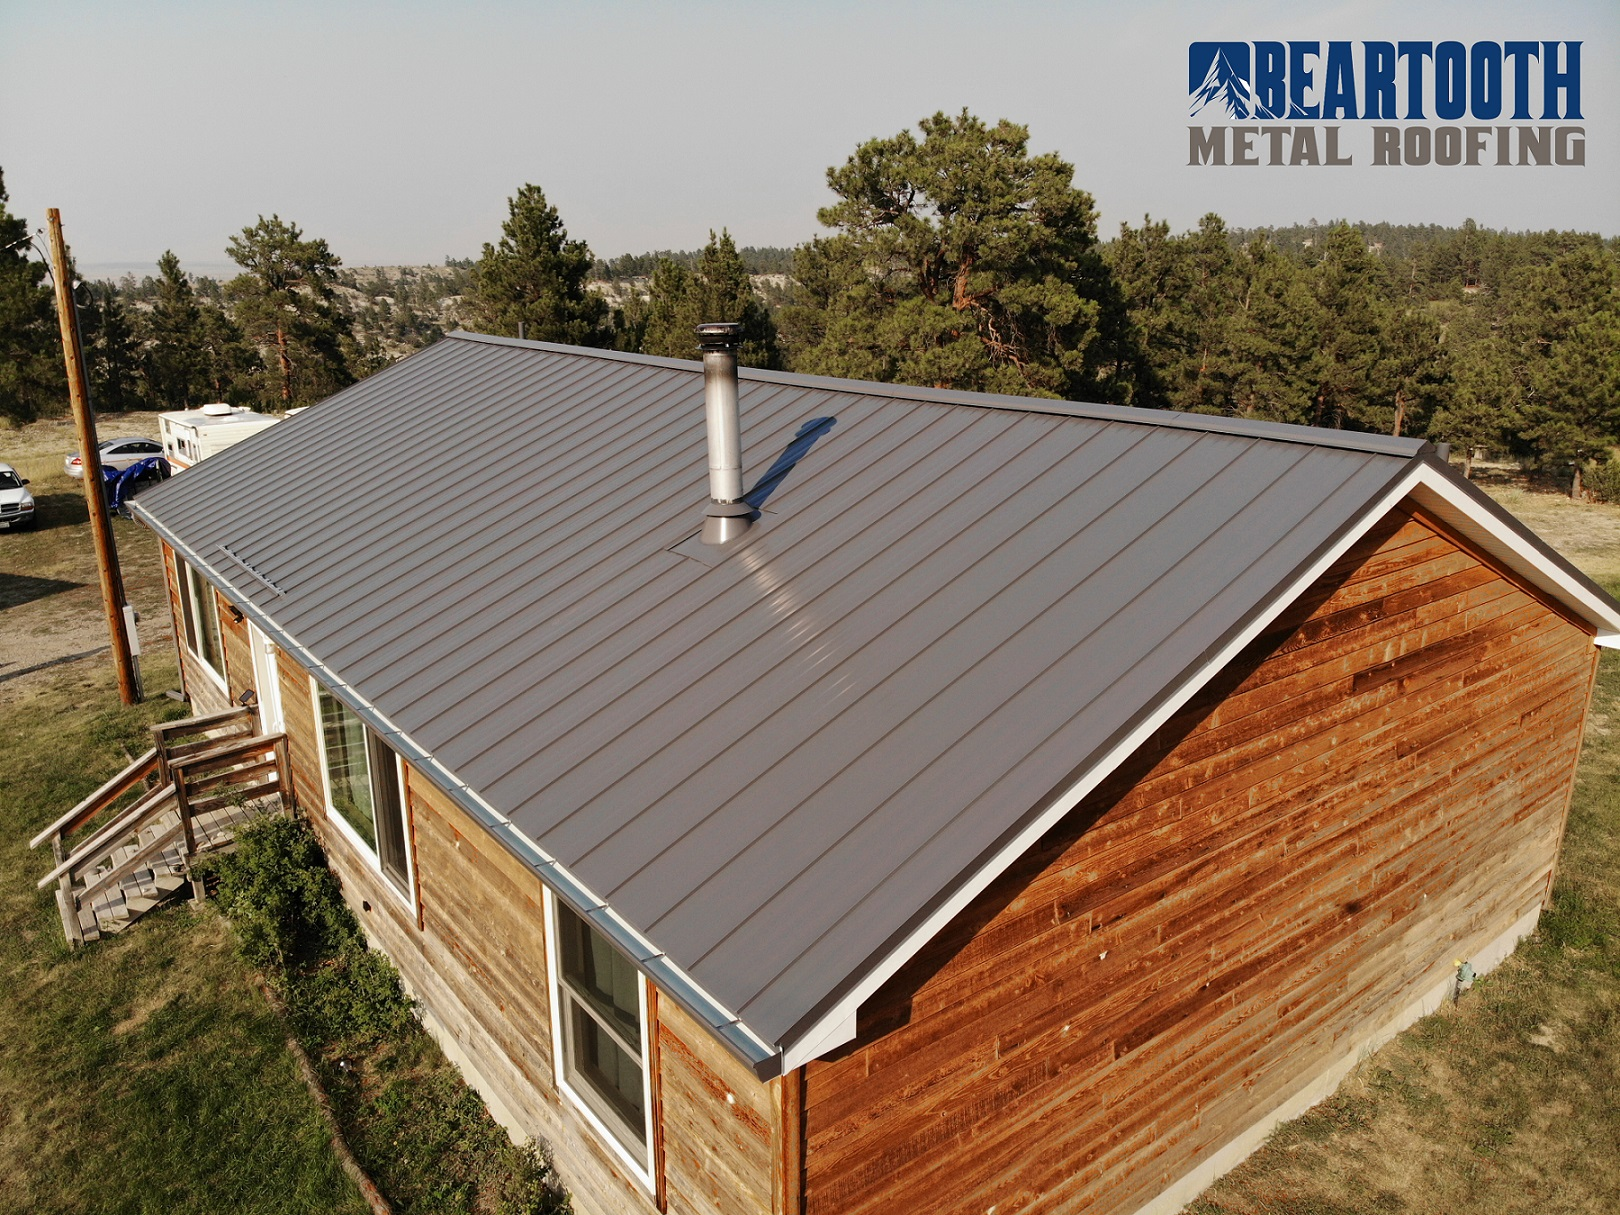 Upgrading To A Metal Roof After A Hail Storm Beartooth